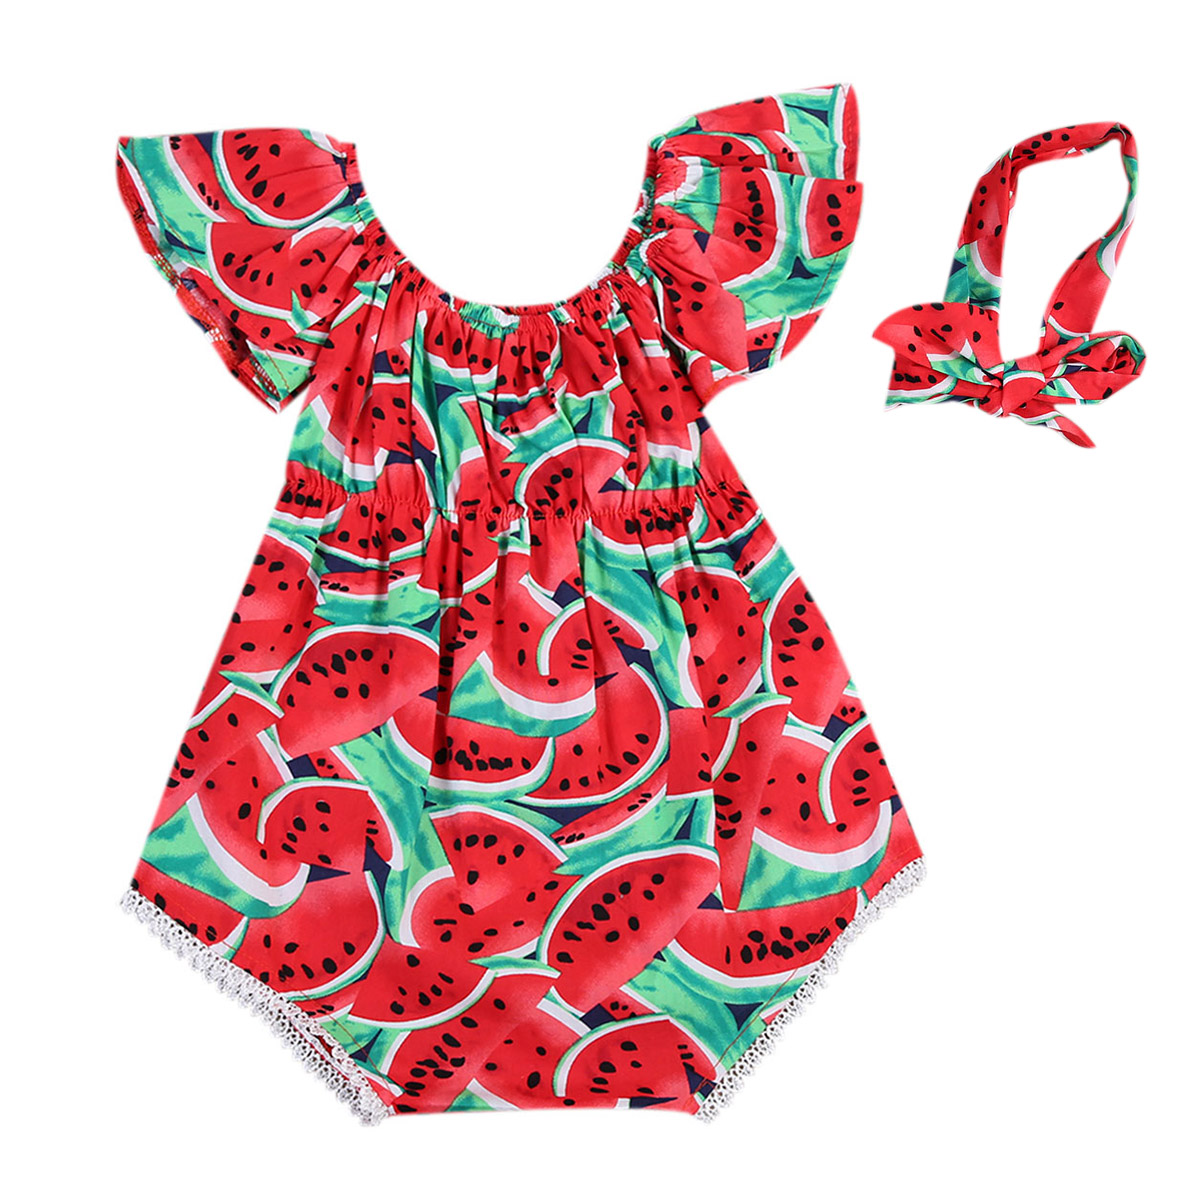 2pcs/set Lovely Newborn Baby Girls Watermelon Print Cotton Short Butterfly Sleeves Romper + Headband Kids Outfits Clothes Set